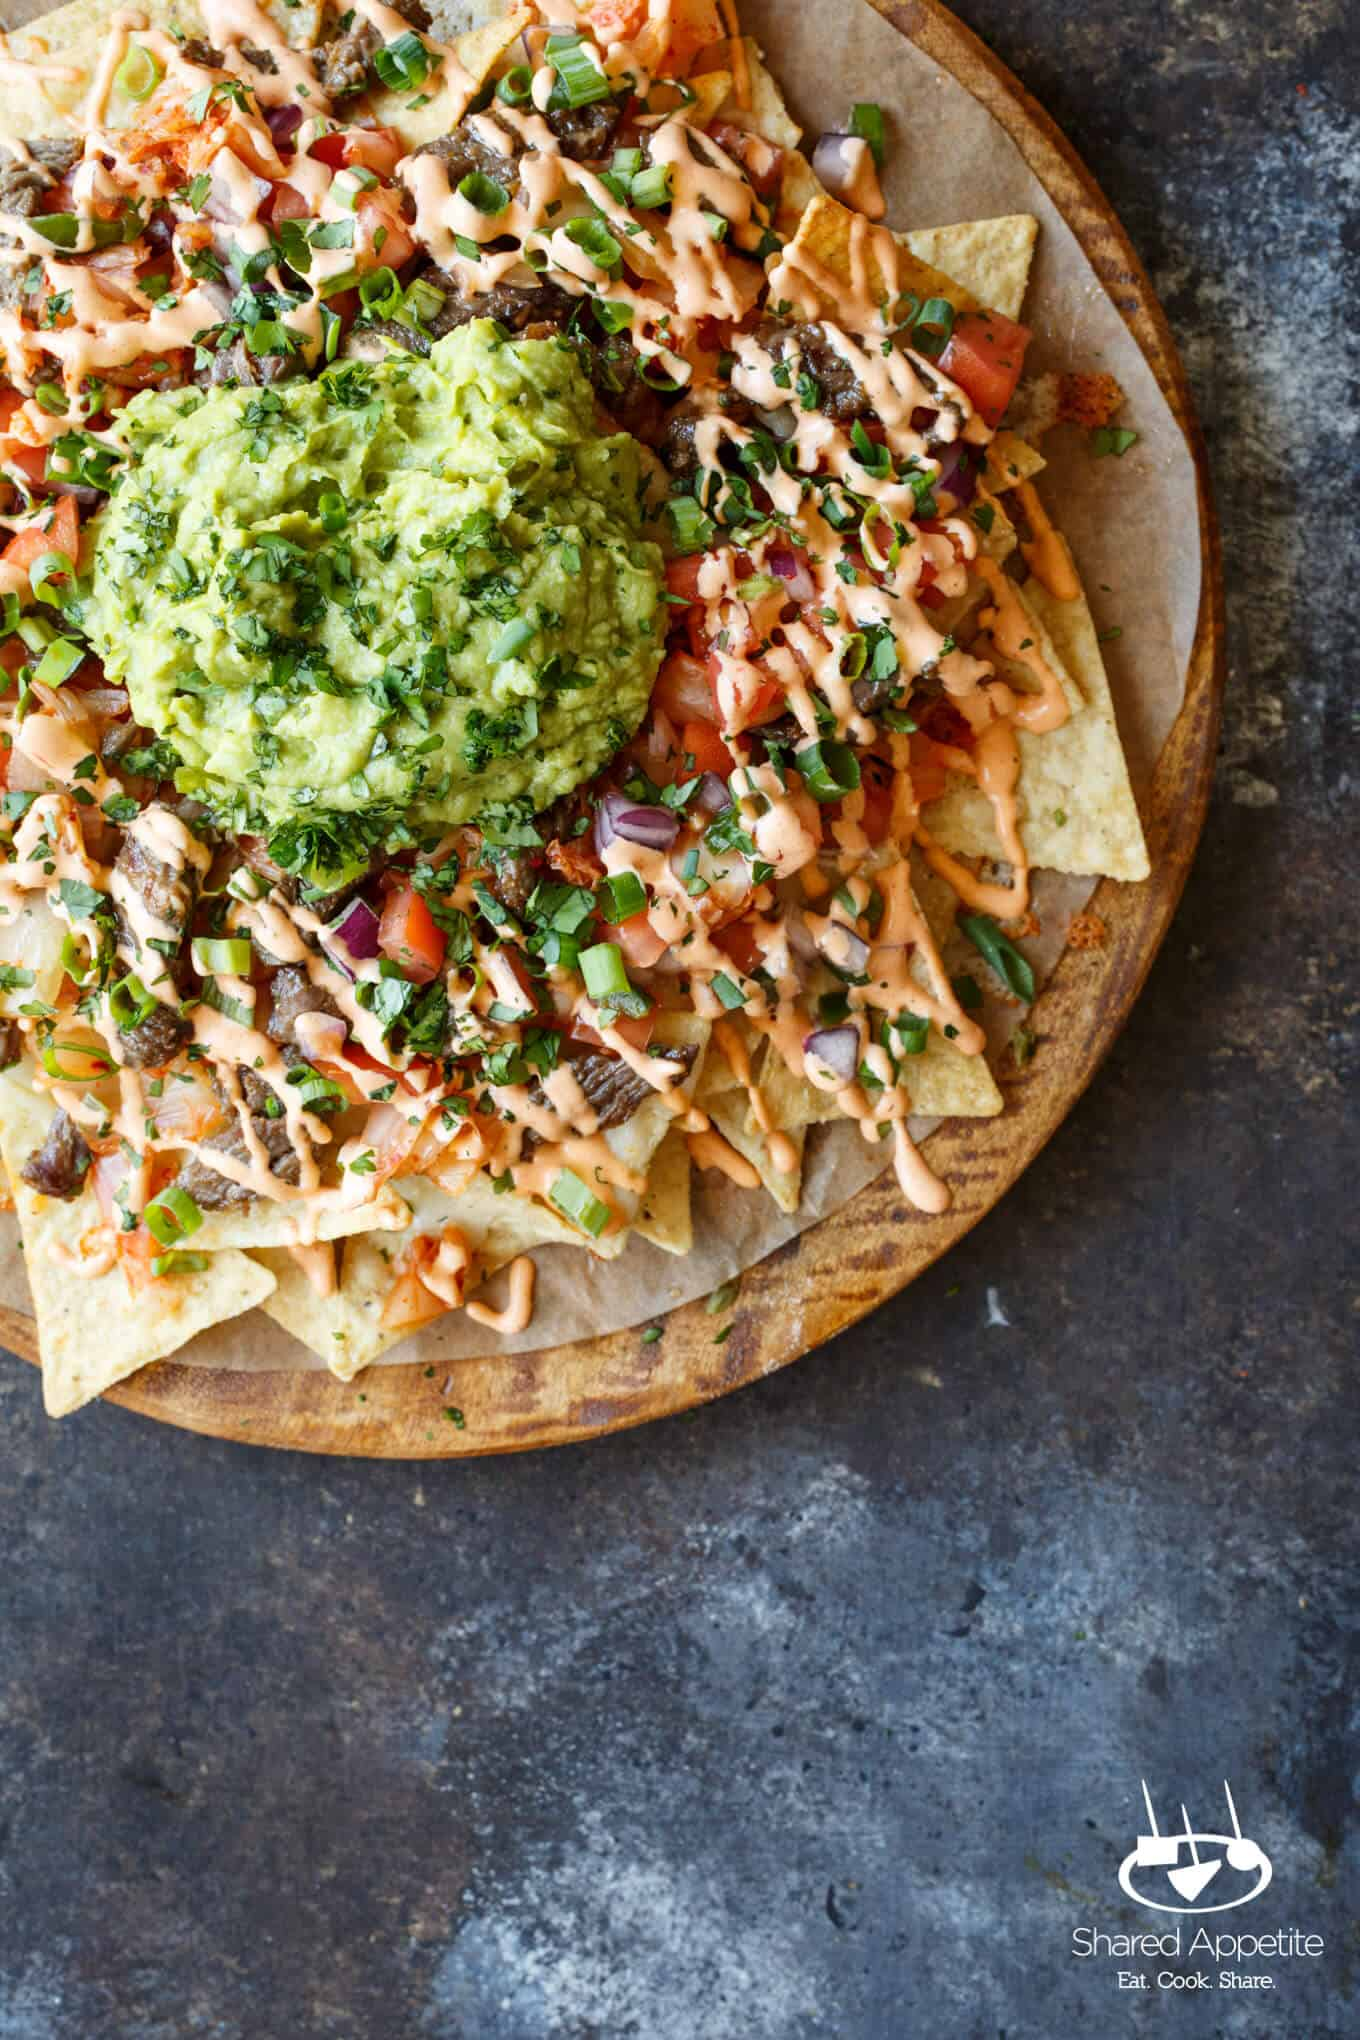 Bulgogi Korean Steak Nachos with Kimchi and Gochujang Aioli | sharedappetite.com